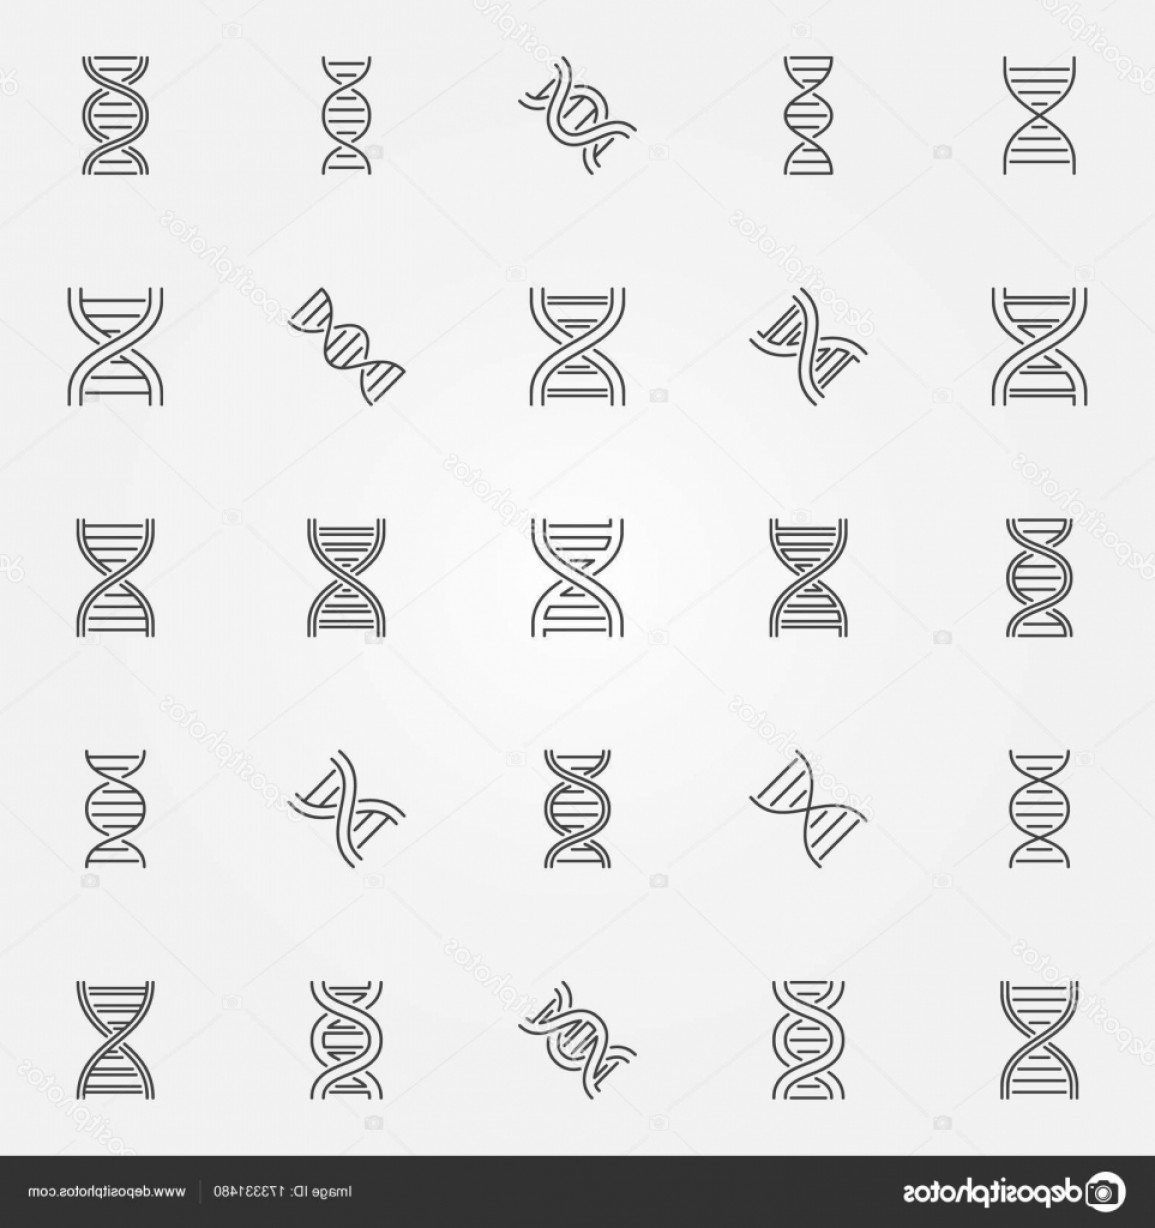 DNA Helix Vector: Stock Illustration Dna Icons Set Vector Dna